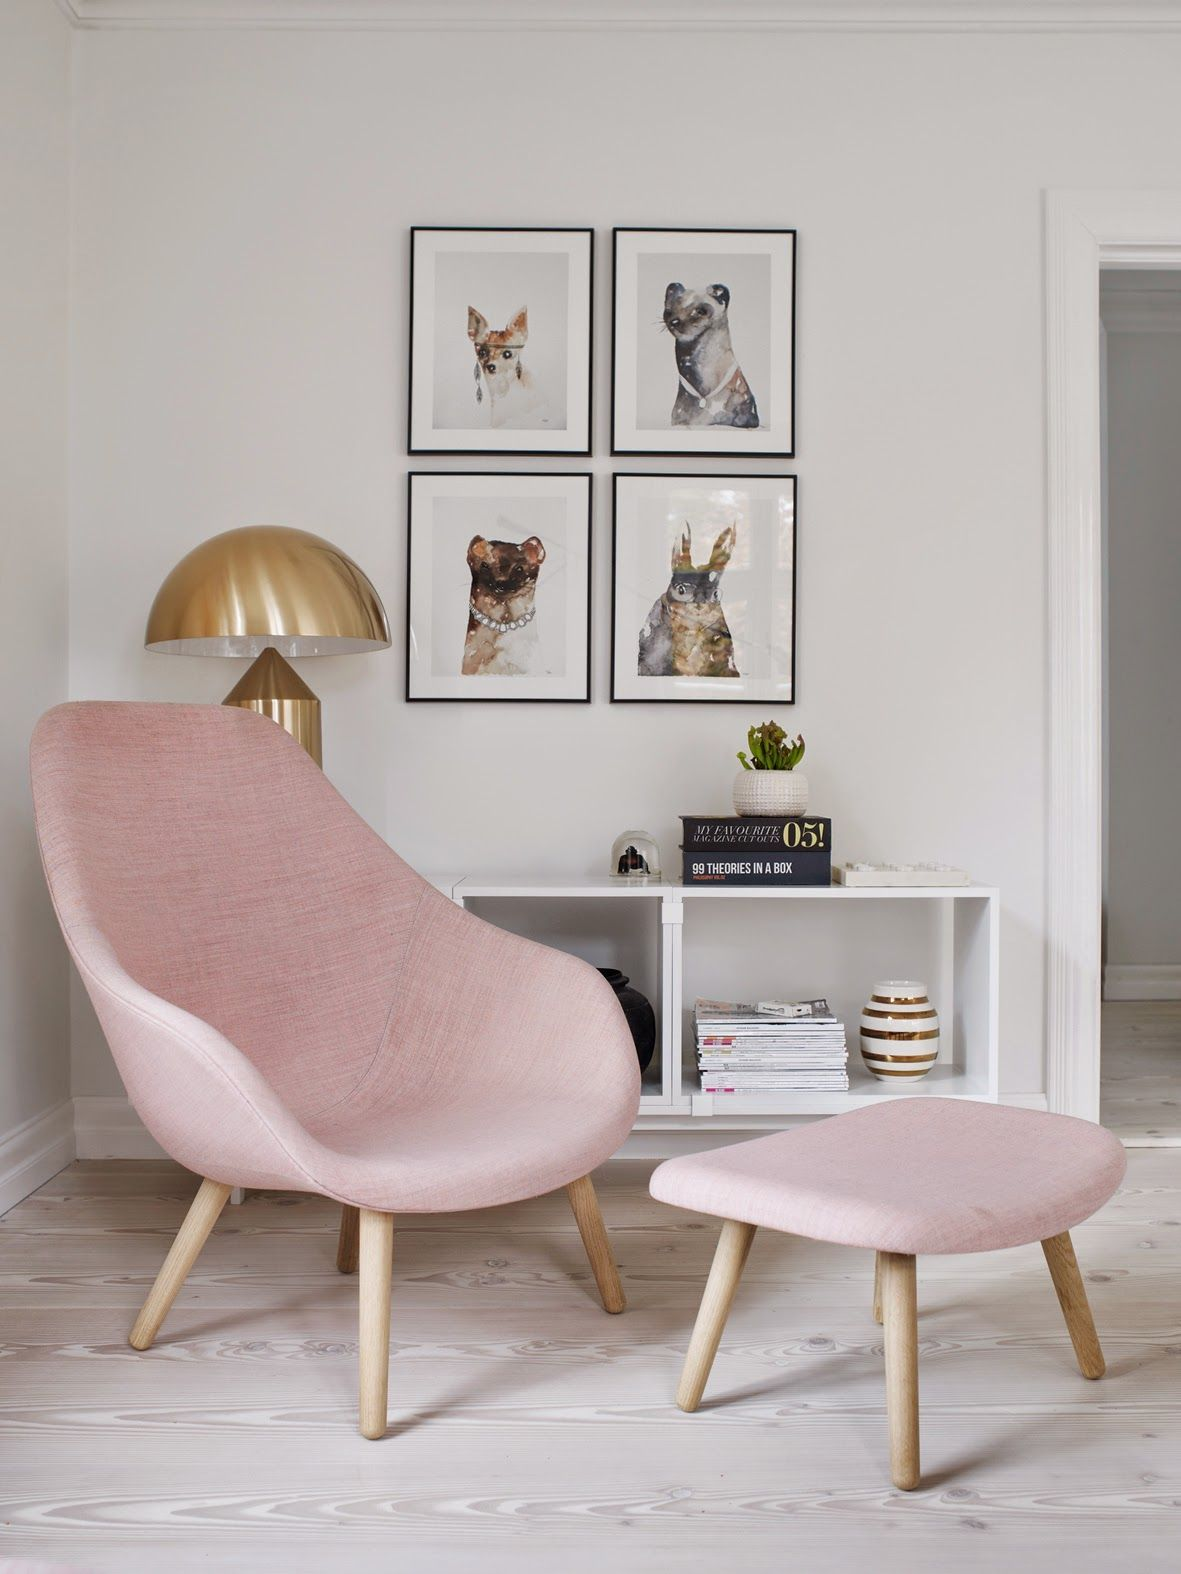 That chair bedroom pinterest home decor decor and living room